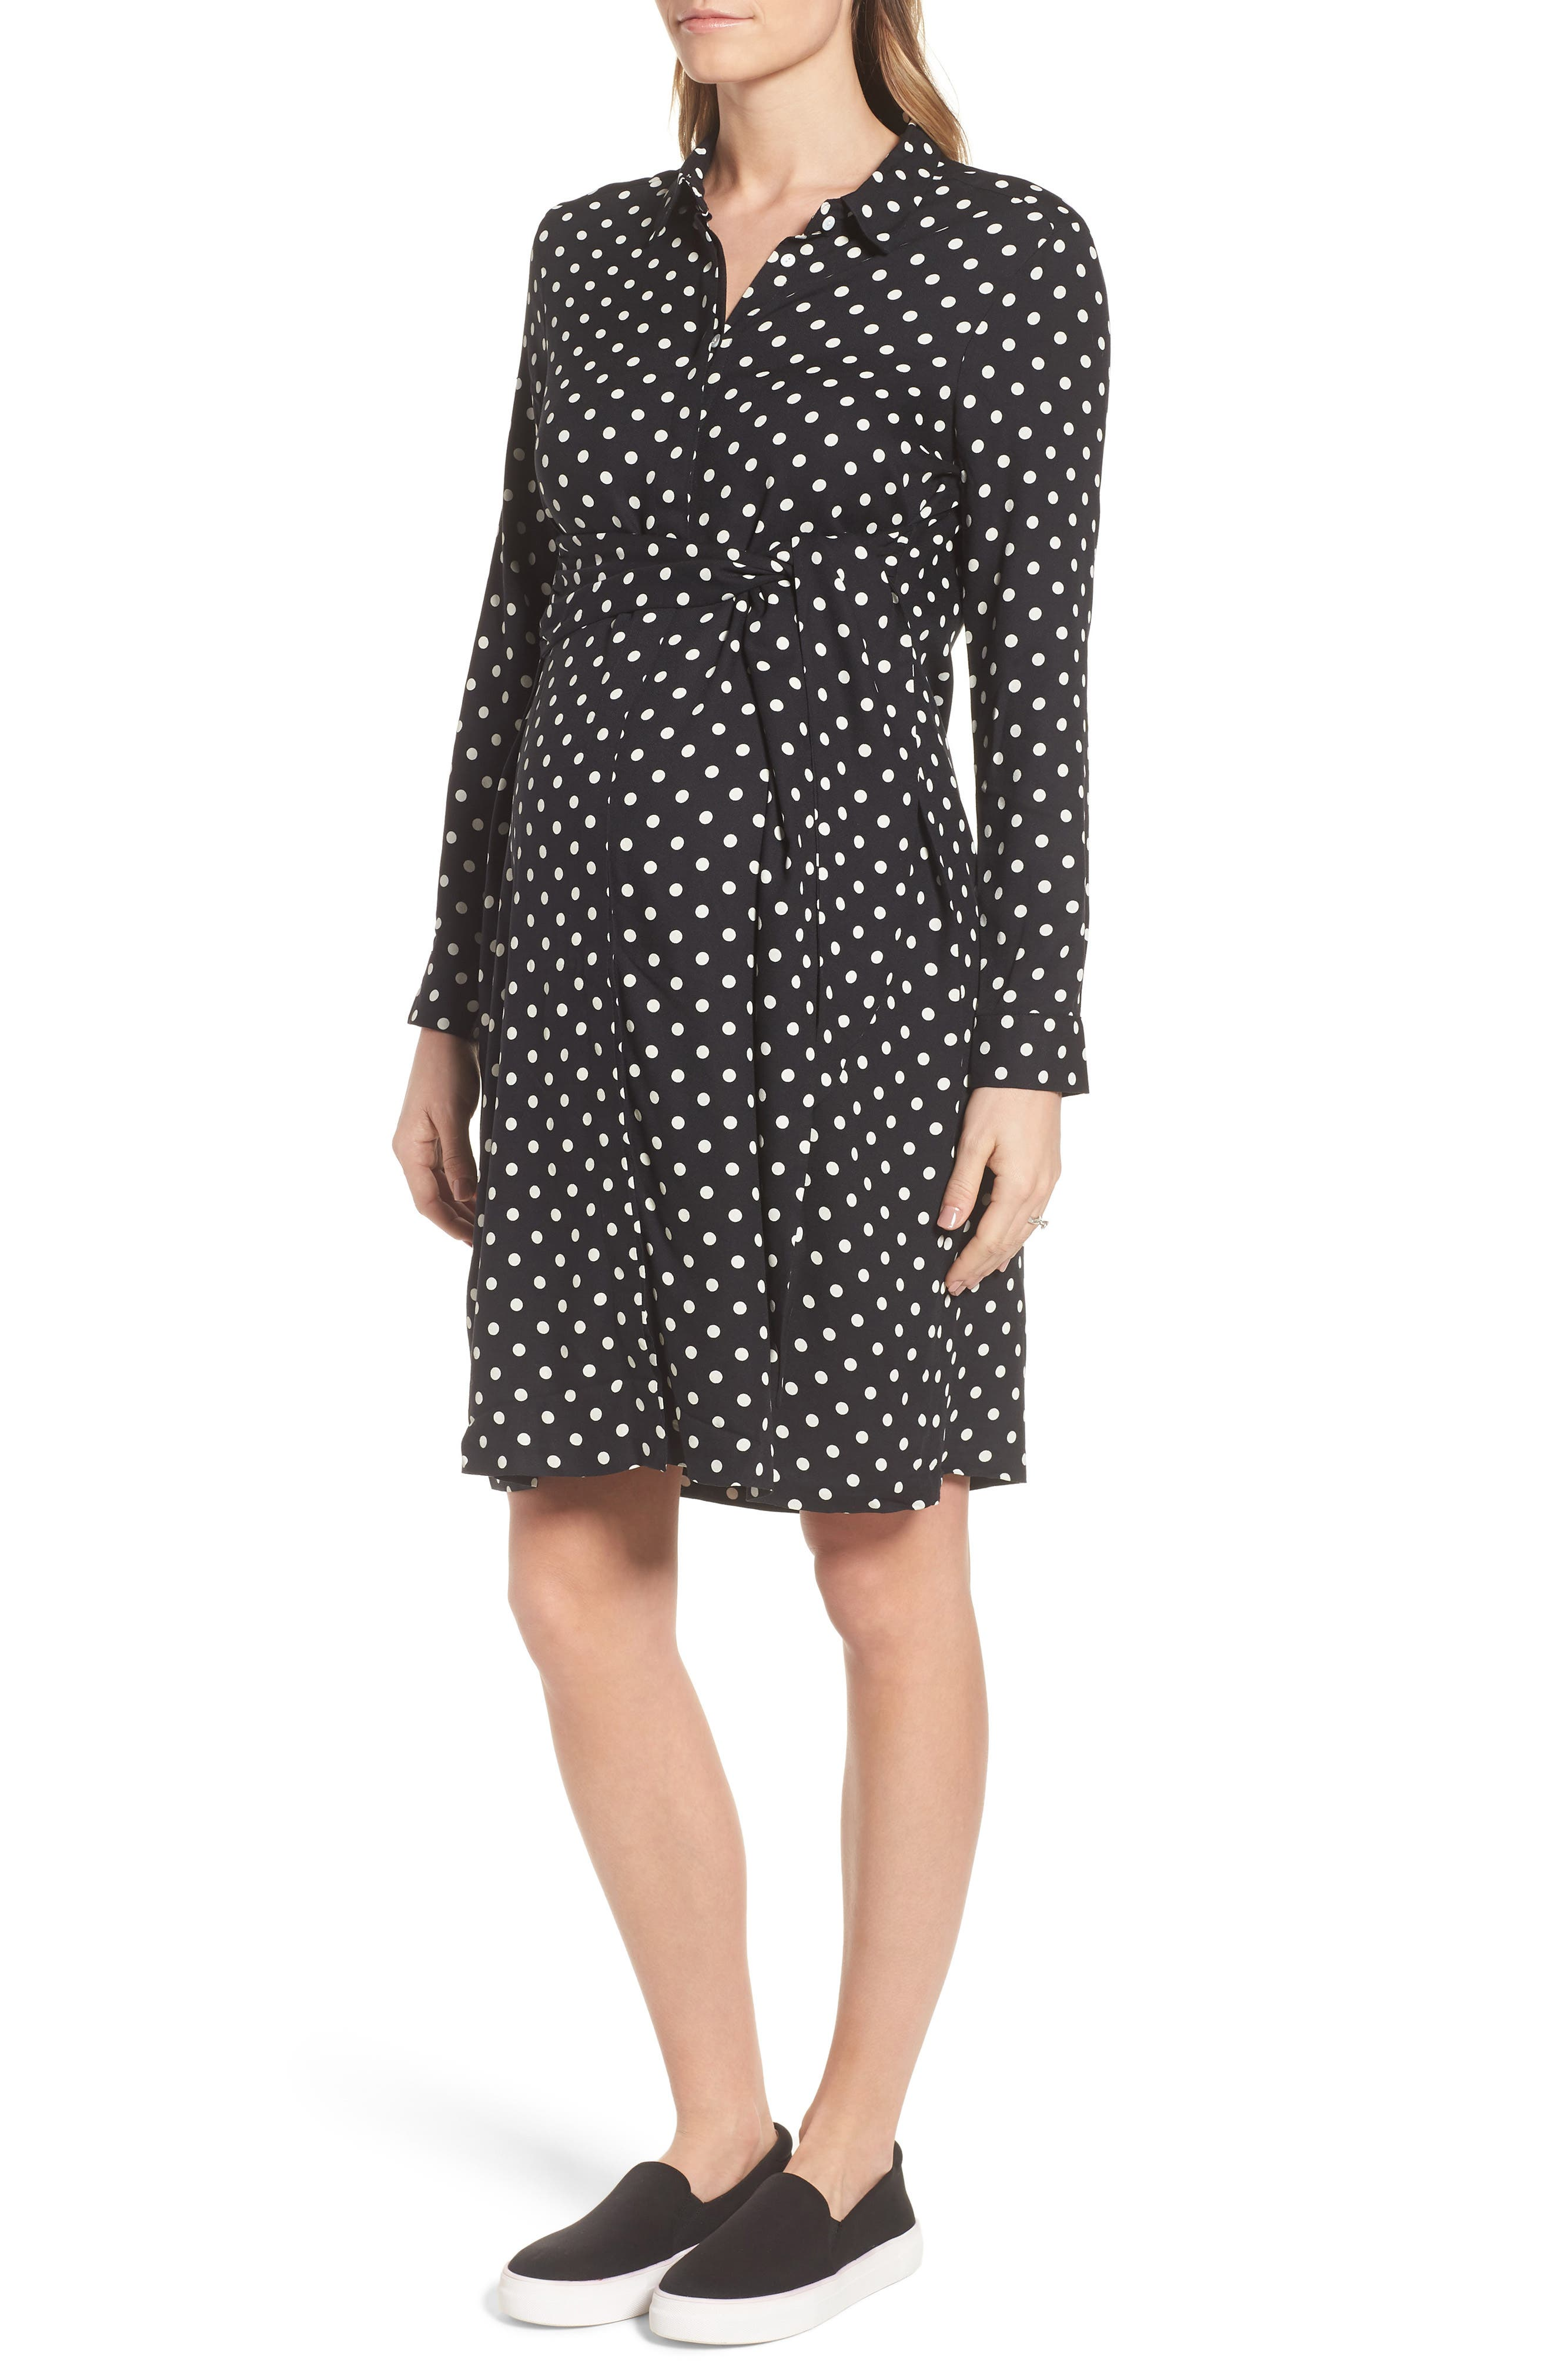 ISABELLA OLIVER,                             Elisha Maternity Shirtdress,                             Alternate thumbnail 3, color,                             BLACK/WHITE POLKA CREPE